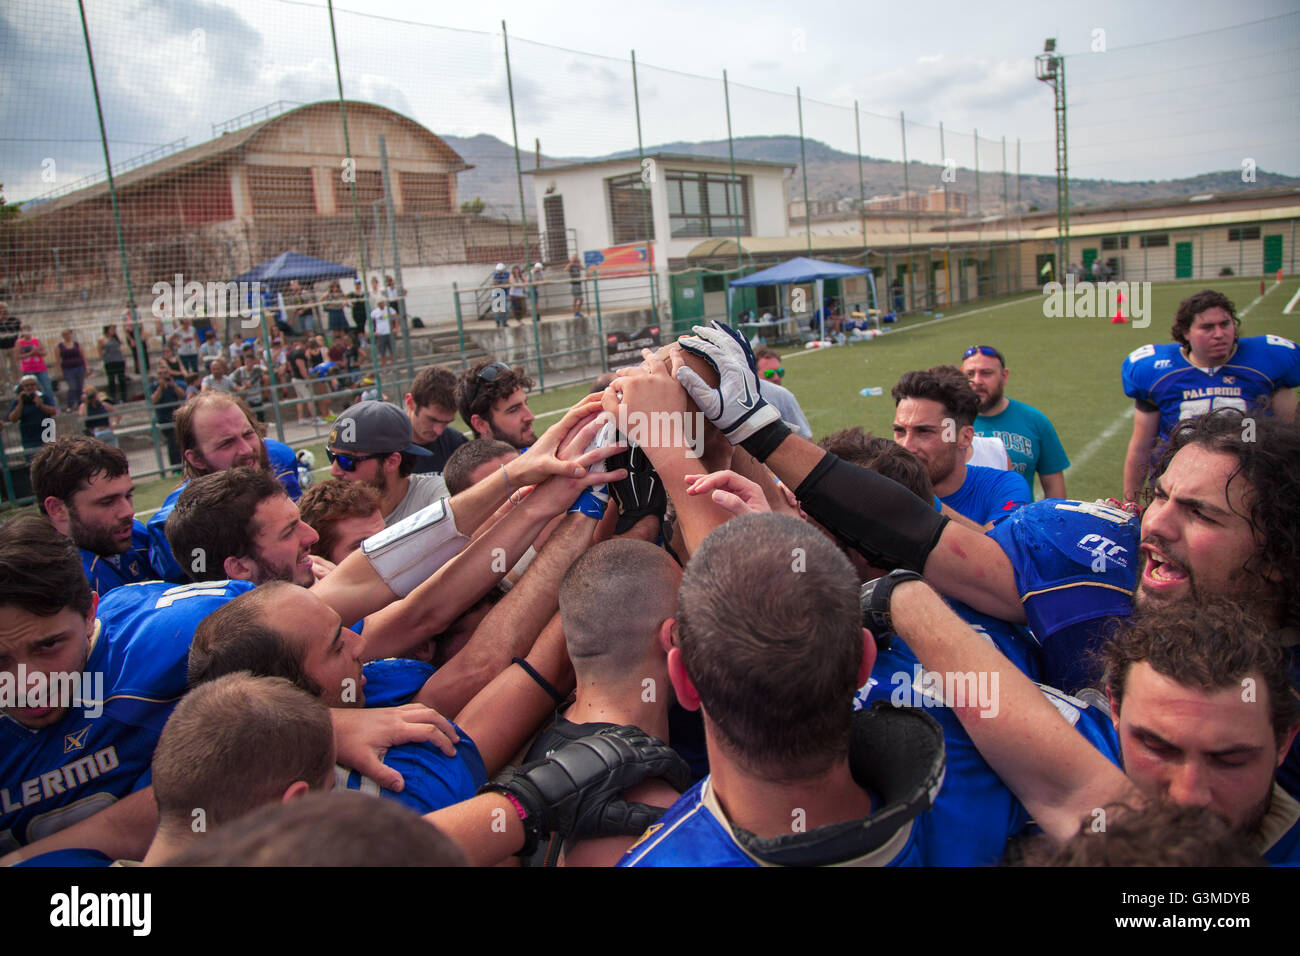 American football game between Sharks Palermo and Mad Bulls Barletta held at Ribolla Calcio. The match ended up - Stock Image